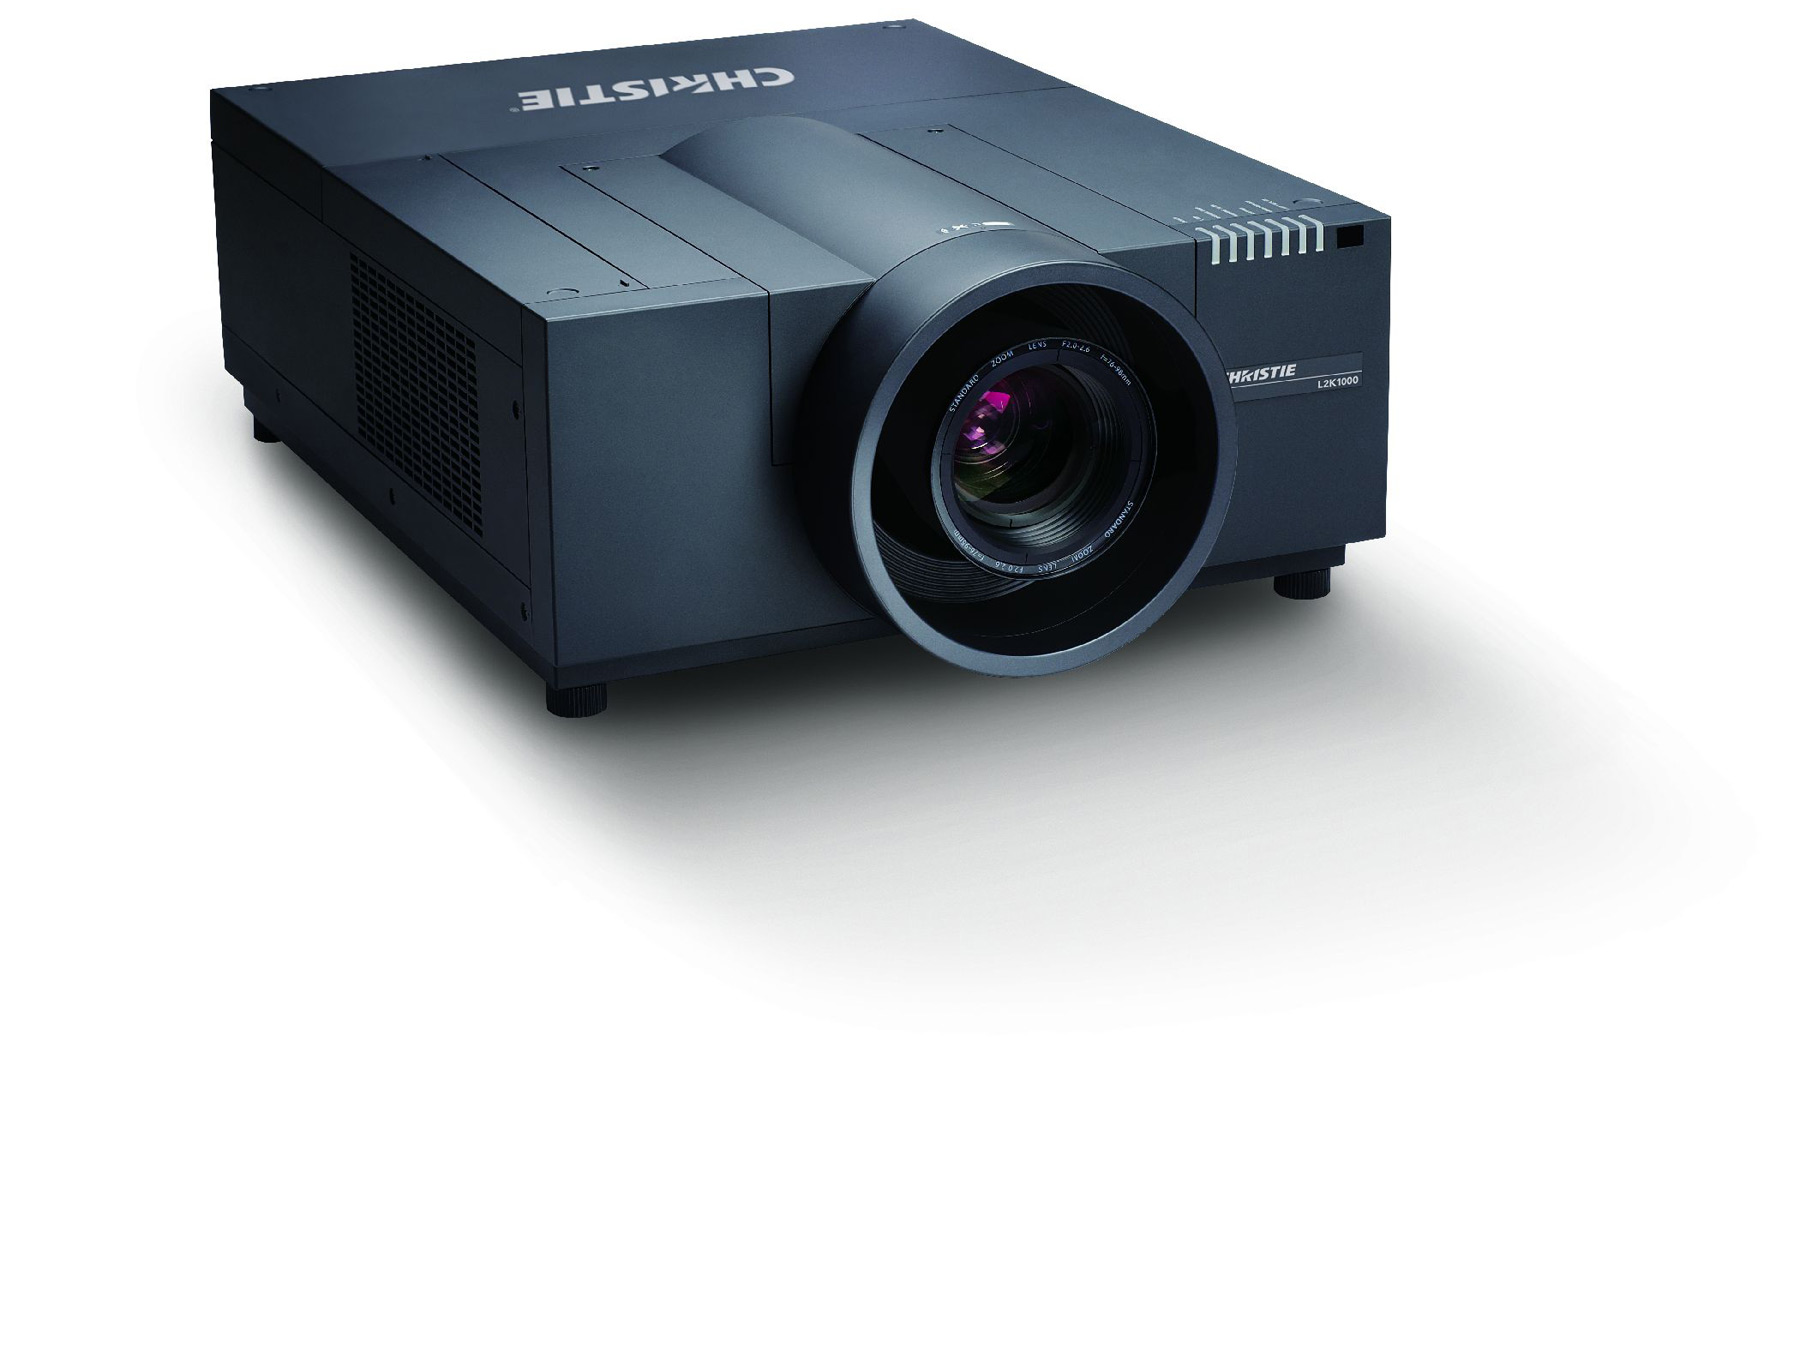 /globalassets/.catalog/products/images/christie-l2k1000/gallery/christie-l2k-1000-3-lcd-digital-projector-image-5.jpg